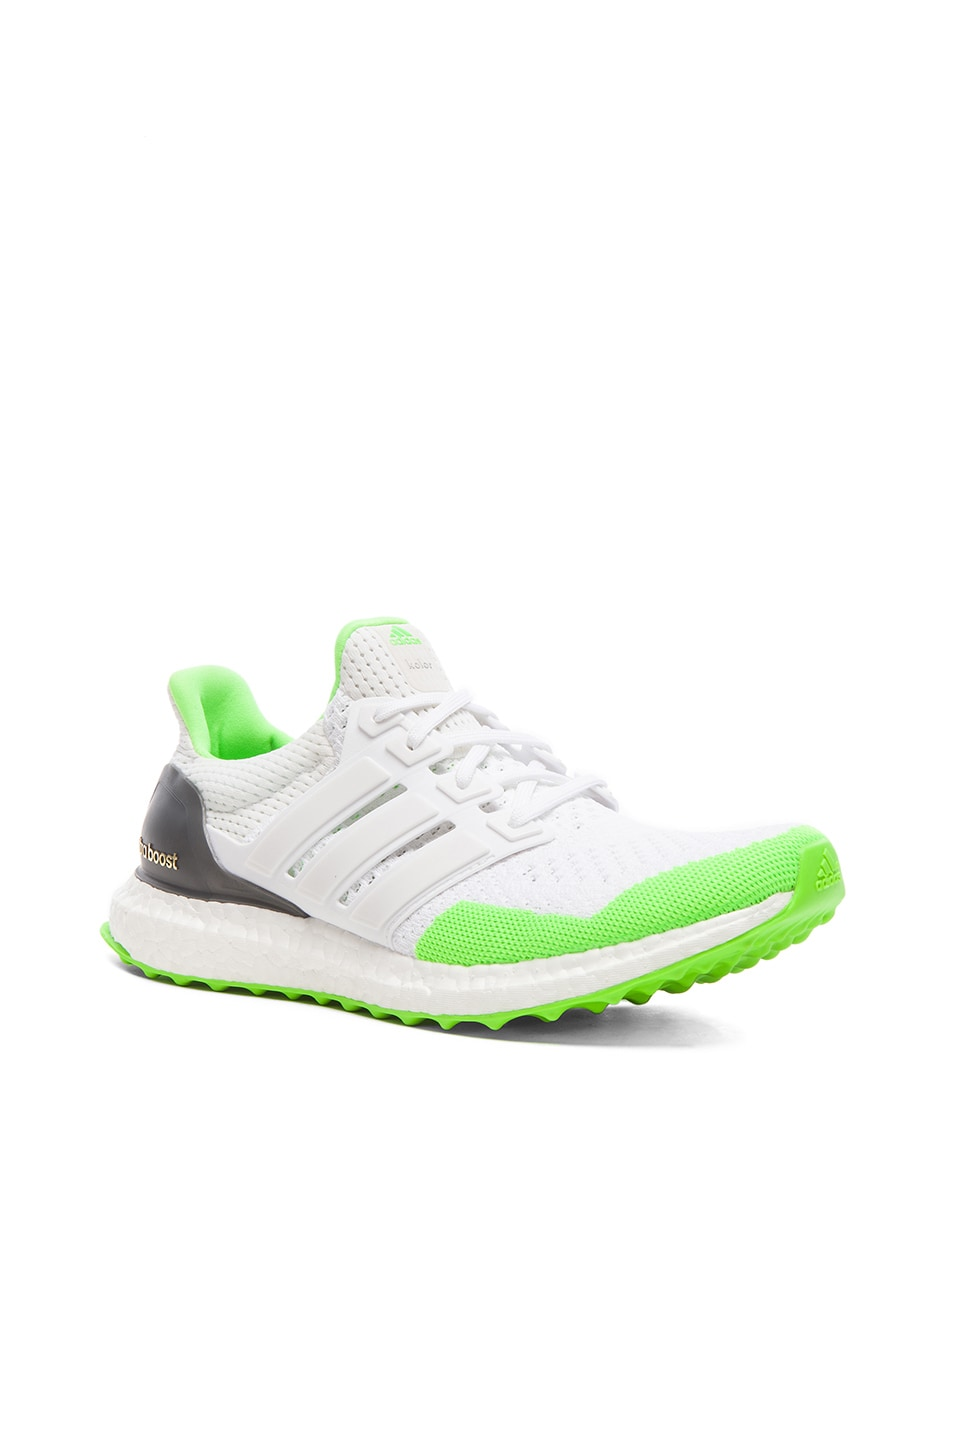 official photos a1ce8 30b47 Image 1 of Adidas x kolor Ultra Boost Shoes in White  Solar Green